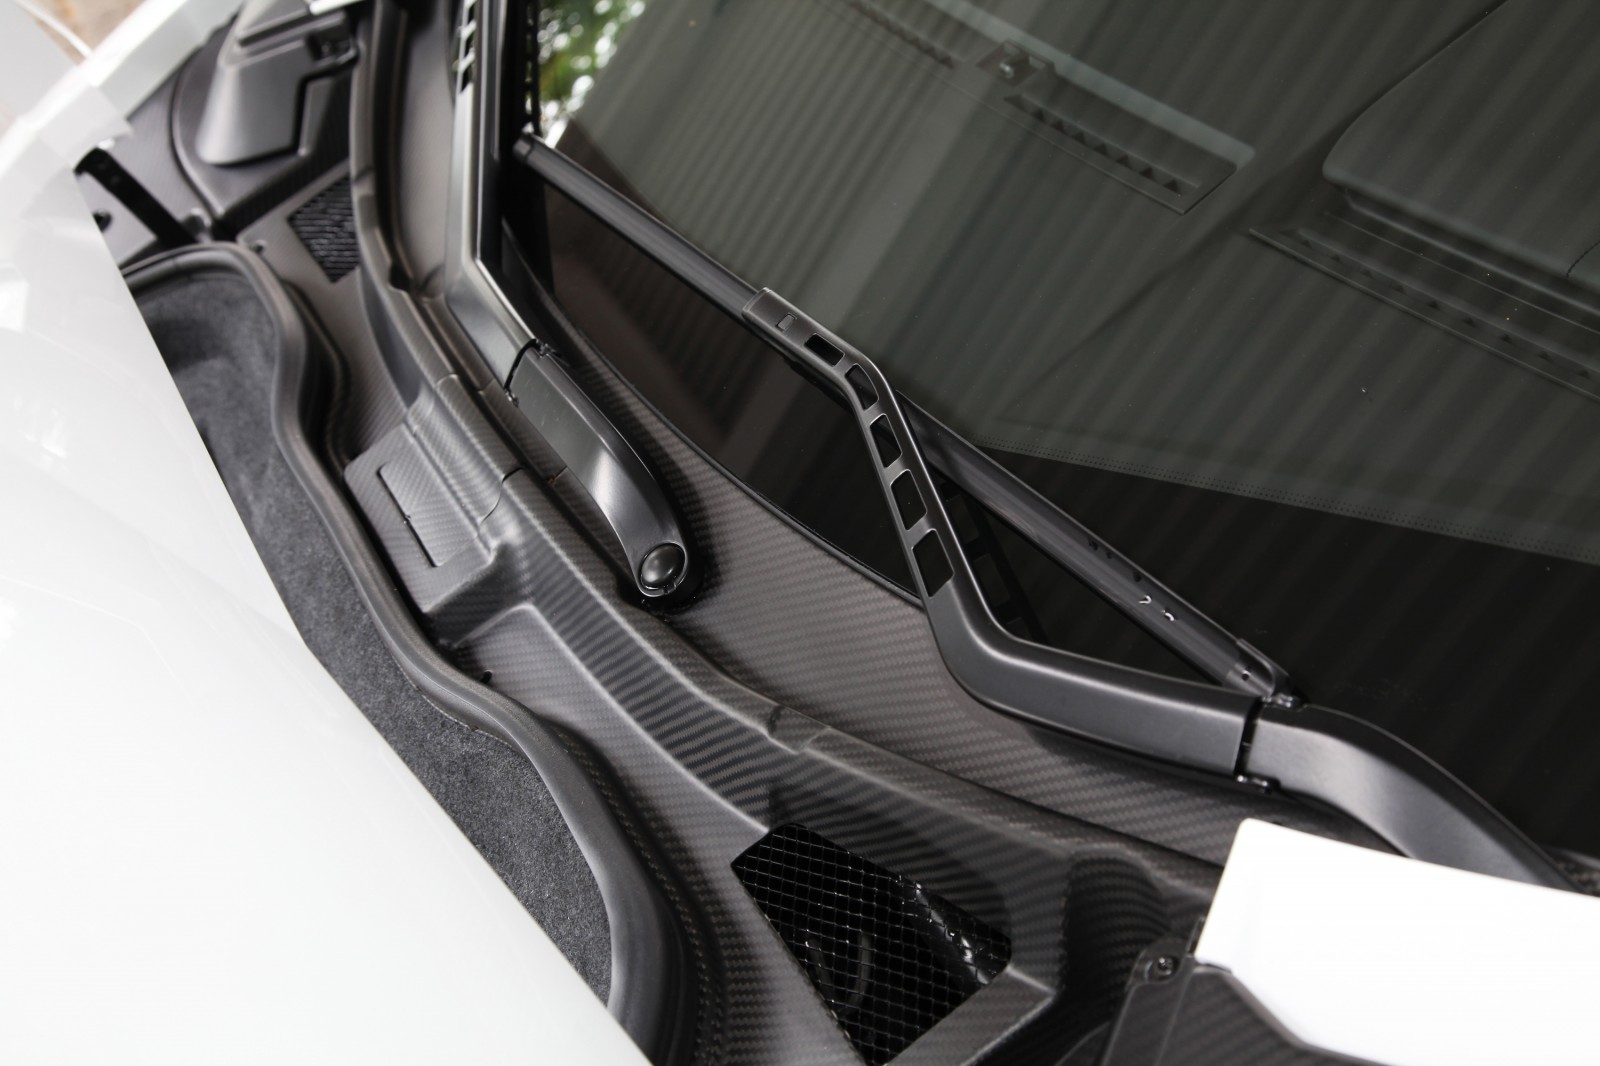 Lamborghini Aventador Becomes A Real Screamer With CAPRISTO Exhaust Upgrade 14